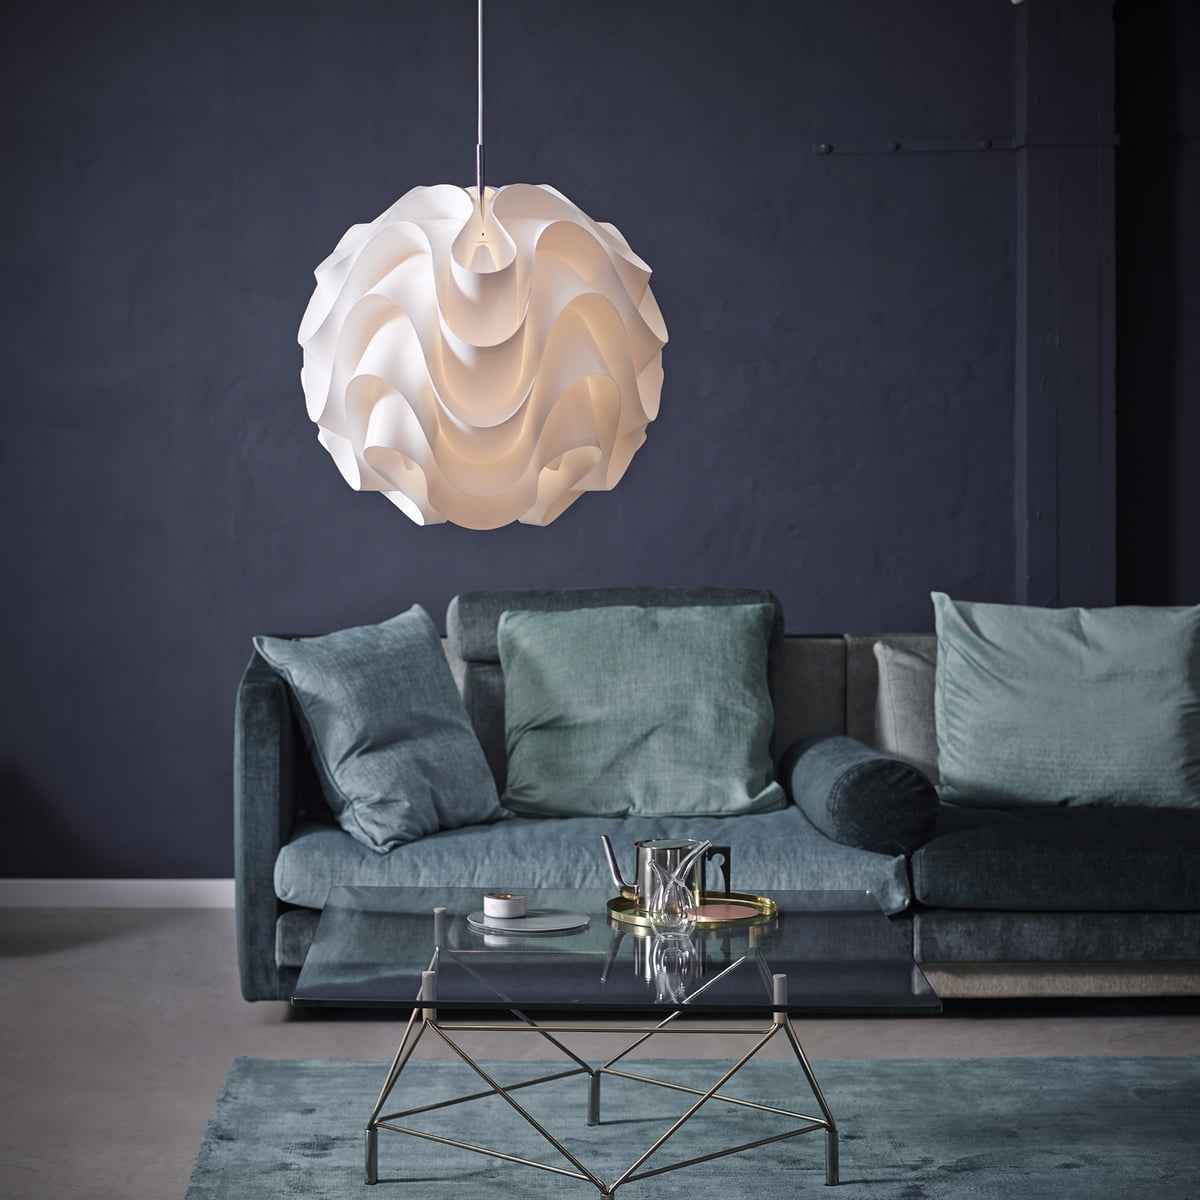 Buy the sinus pendant lamp from le klint le klint sinus 172 pendant lamp mozeypictures